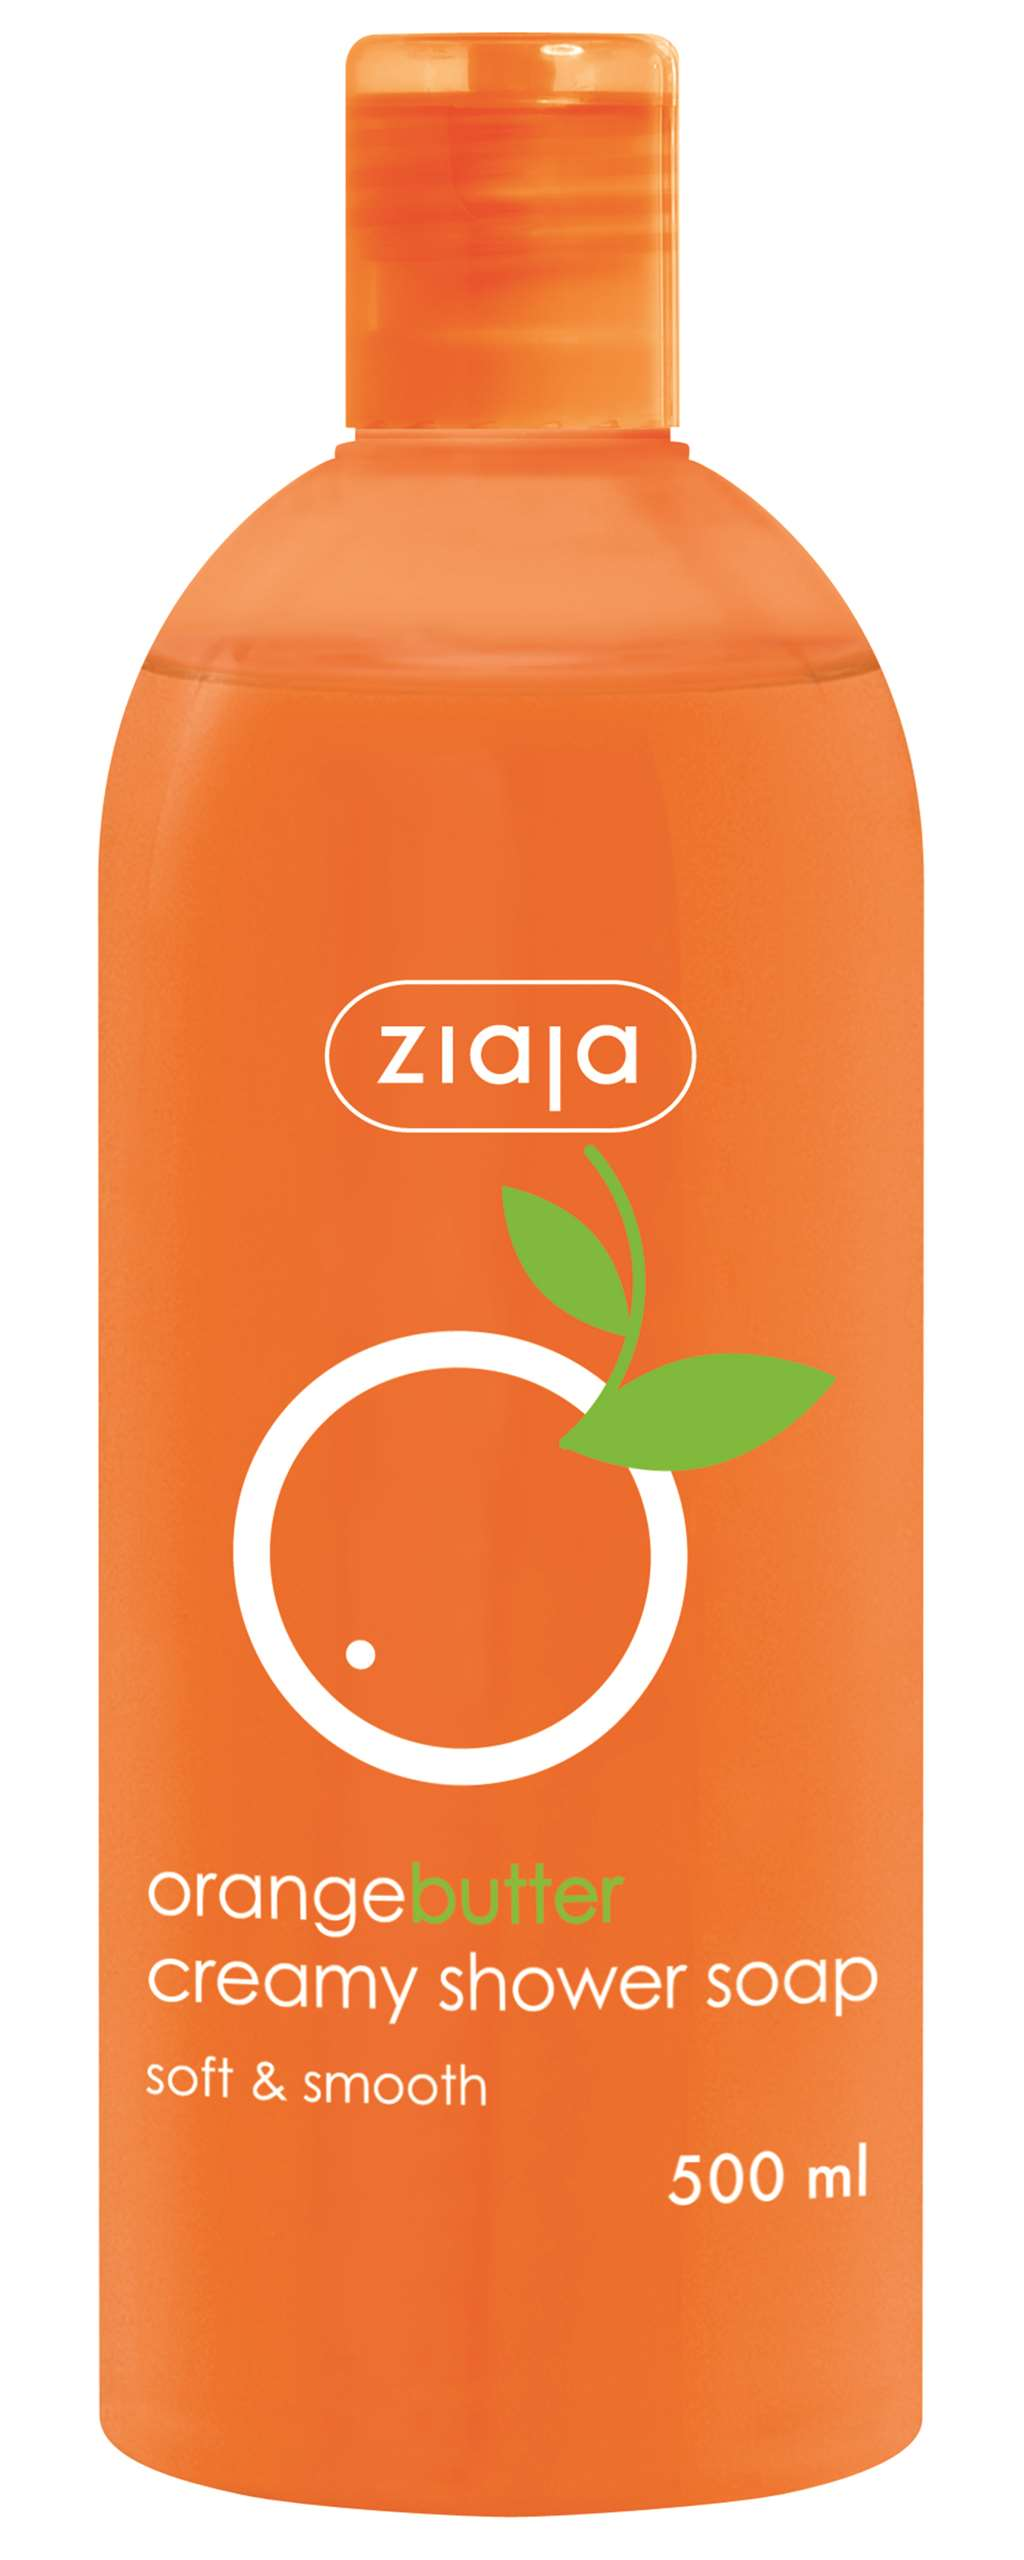 ziaja_orange_butter_creamy_showersoap